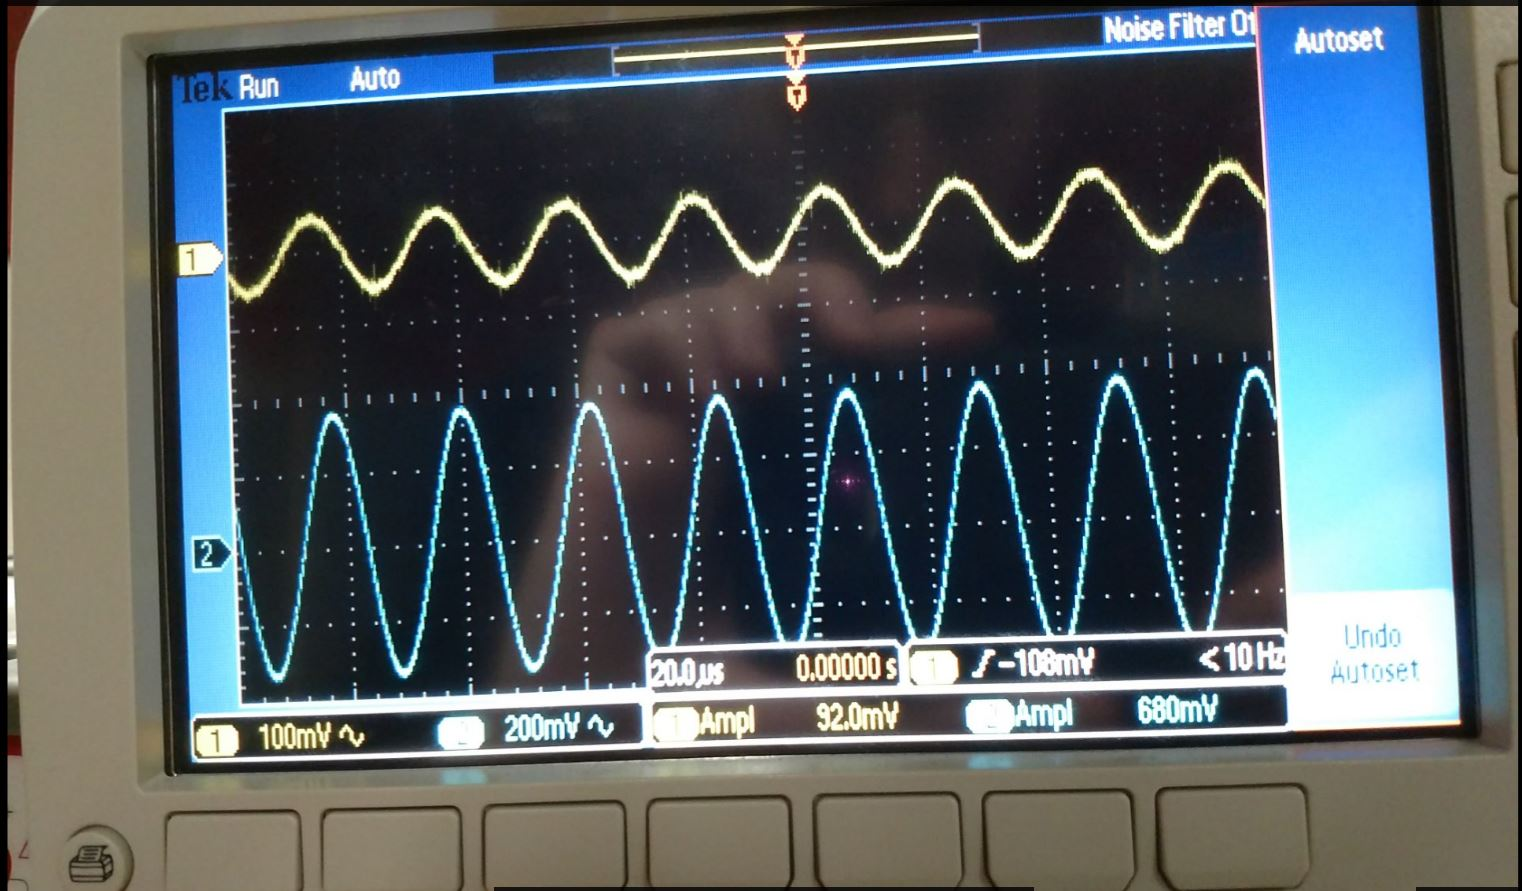 Lab Of A Noninverting Amplifier For Given Input Waveform And Gain The Non Inverting Op Amp With 10 At 1khz